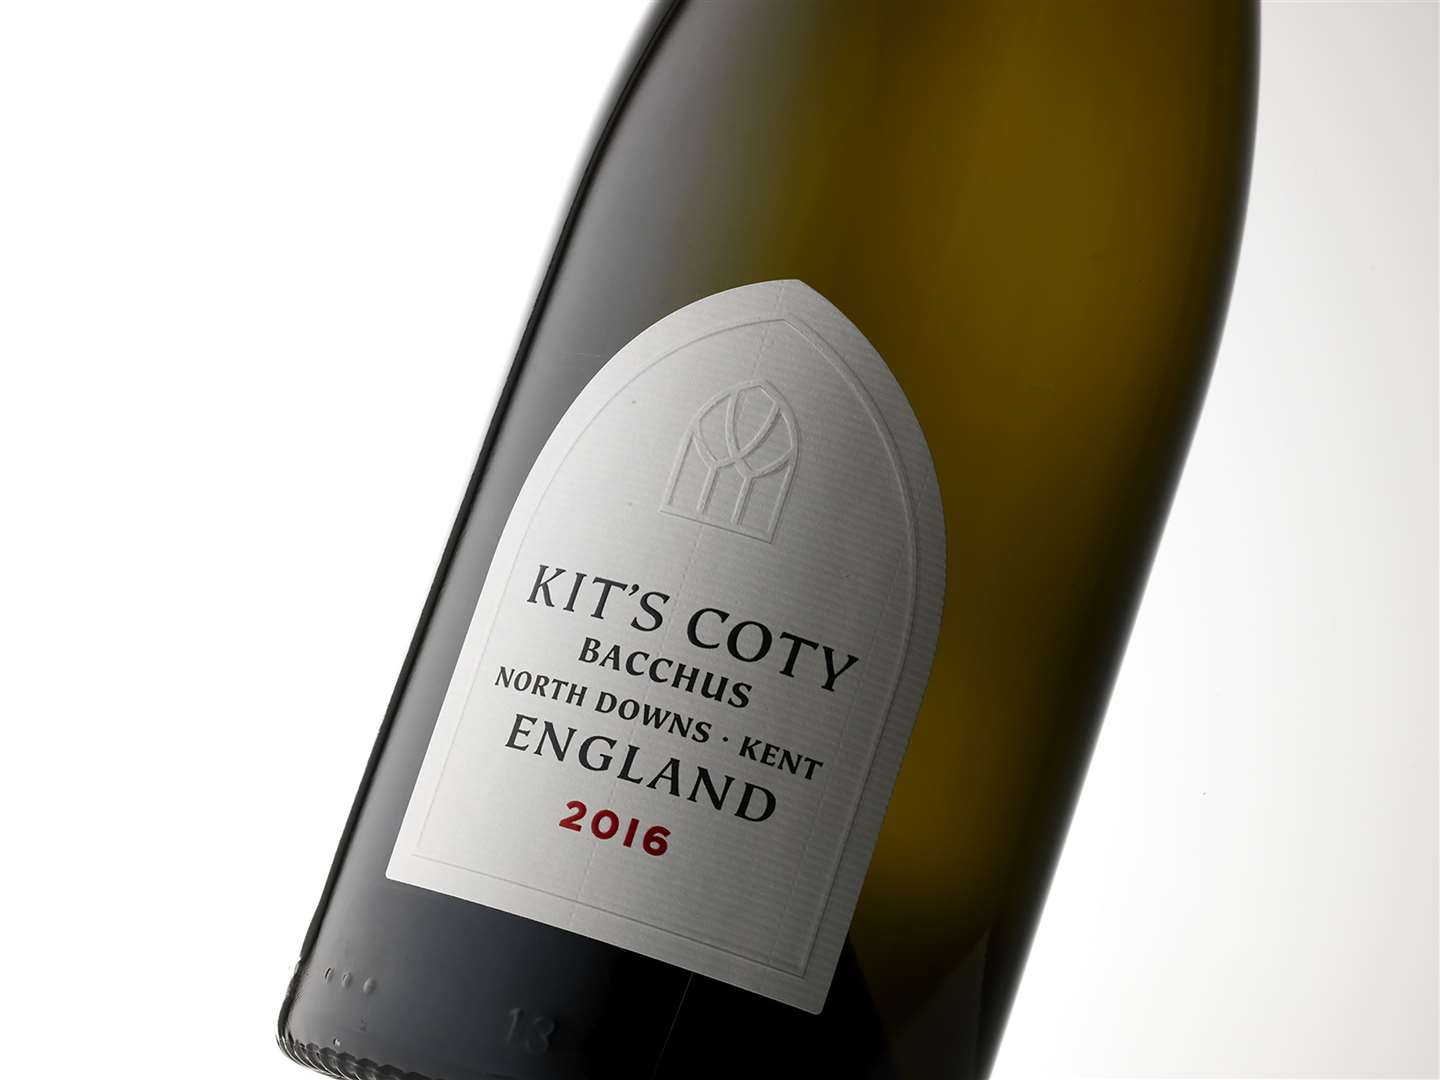 Chapel Down's Bacchus 2016 for its Kit's Coty vineyard